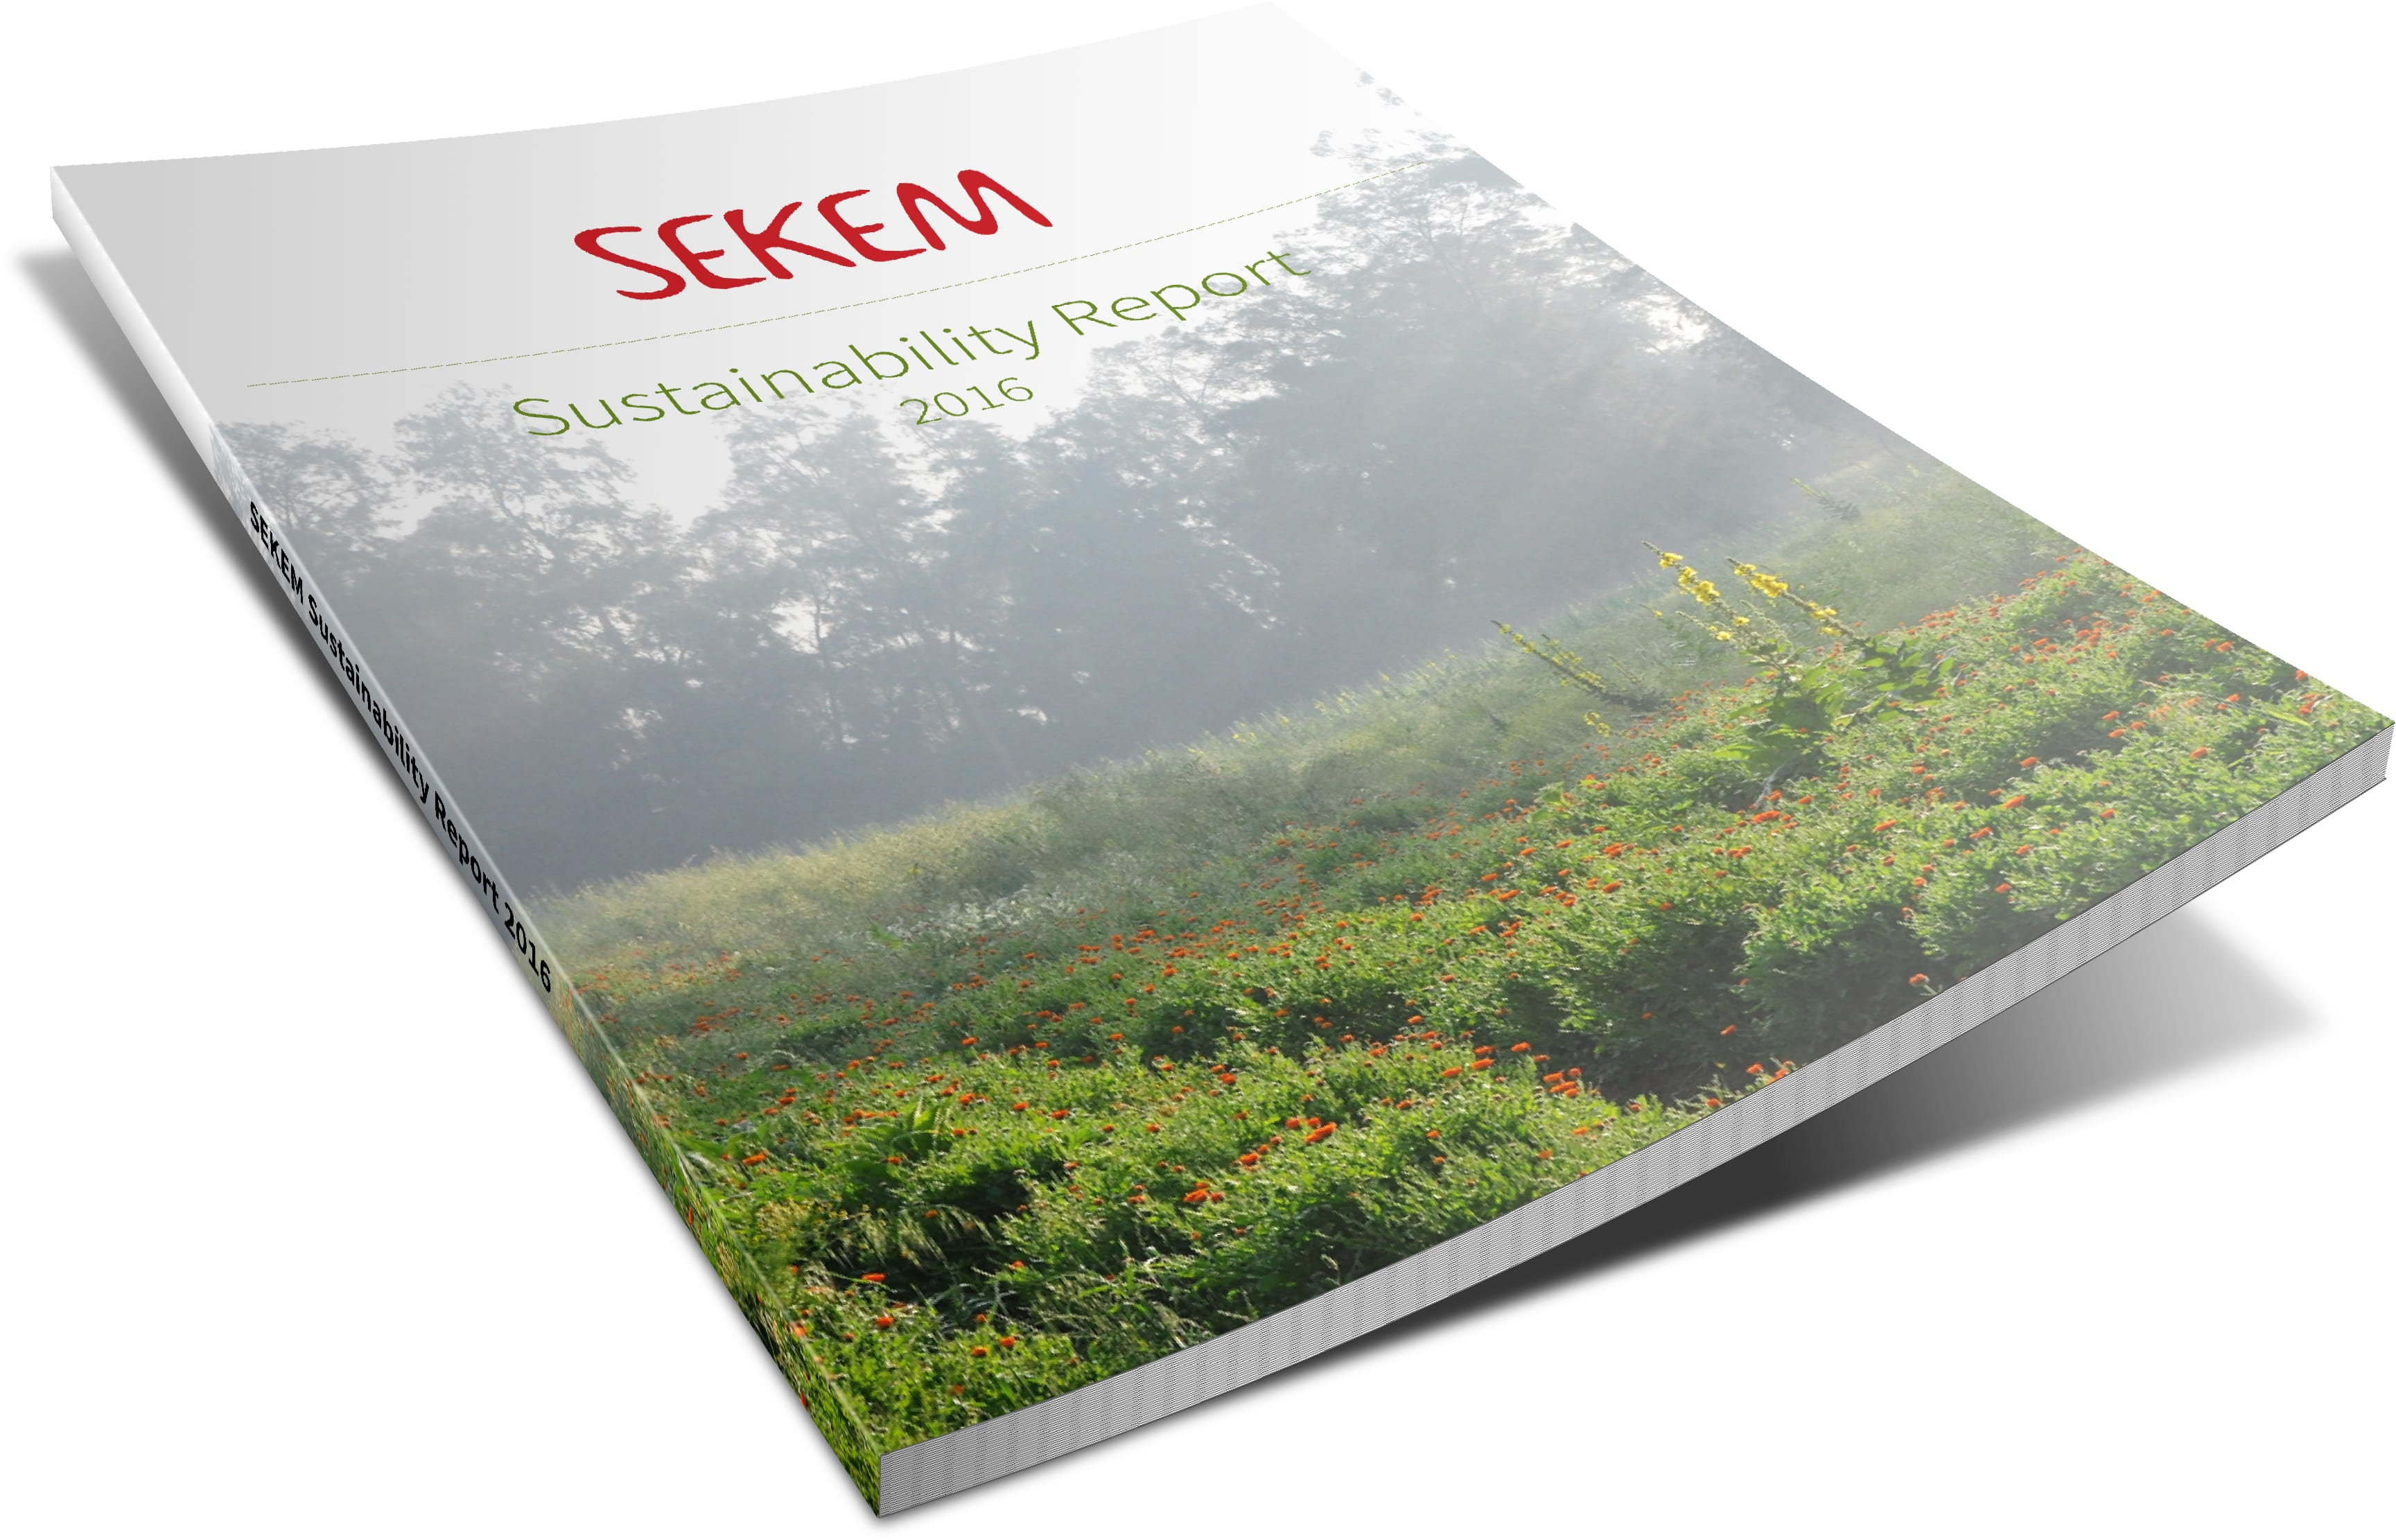 SEKEM Publishes Sustainability Report 2016